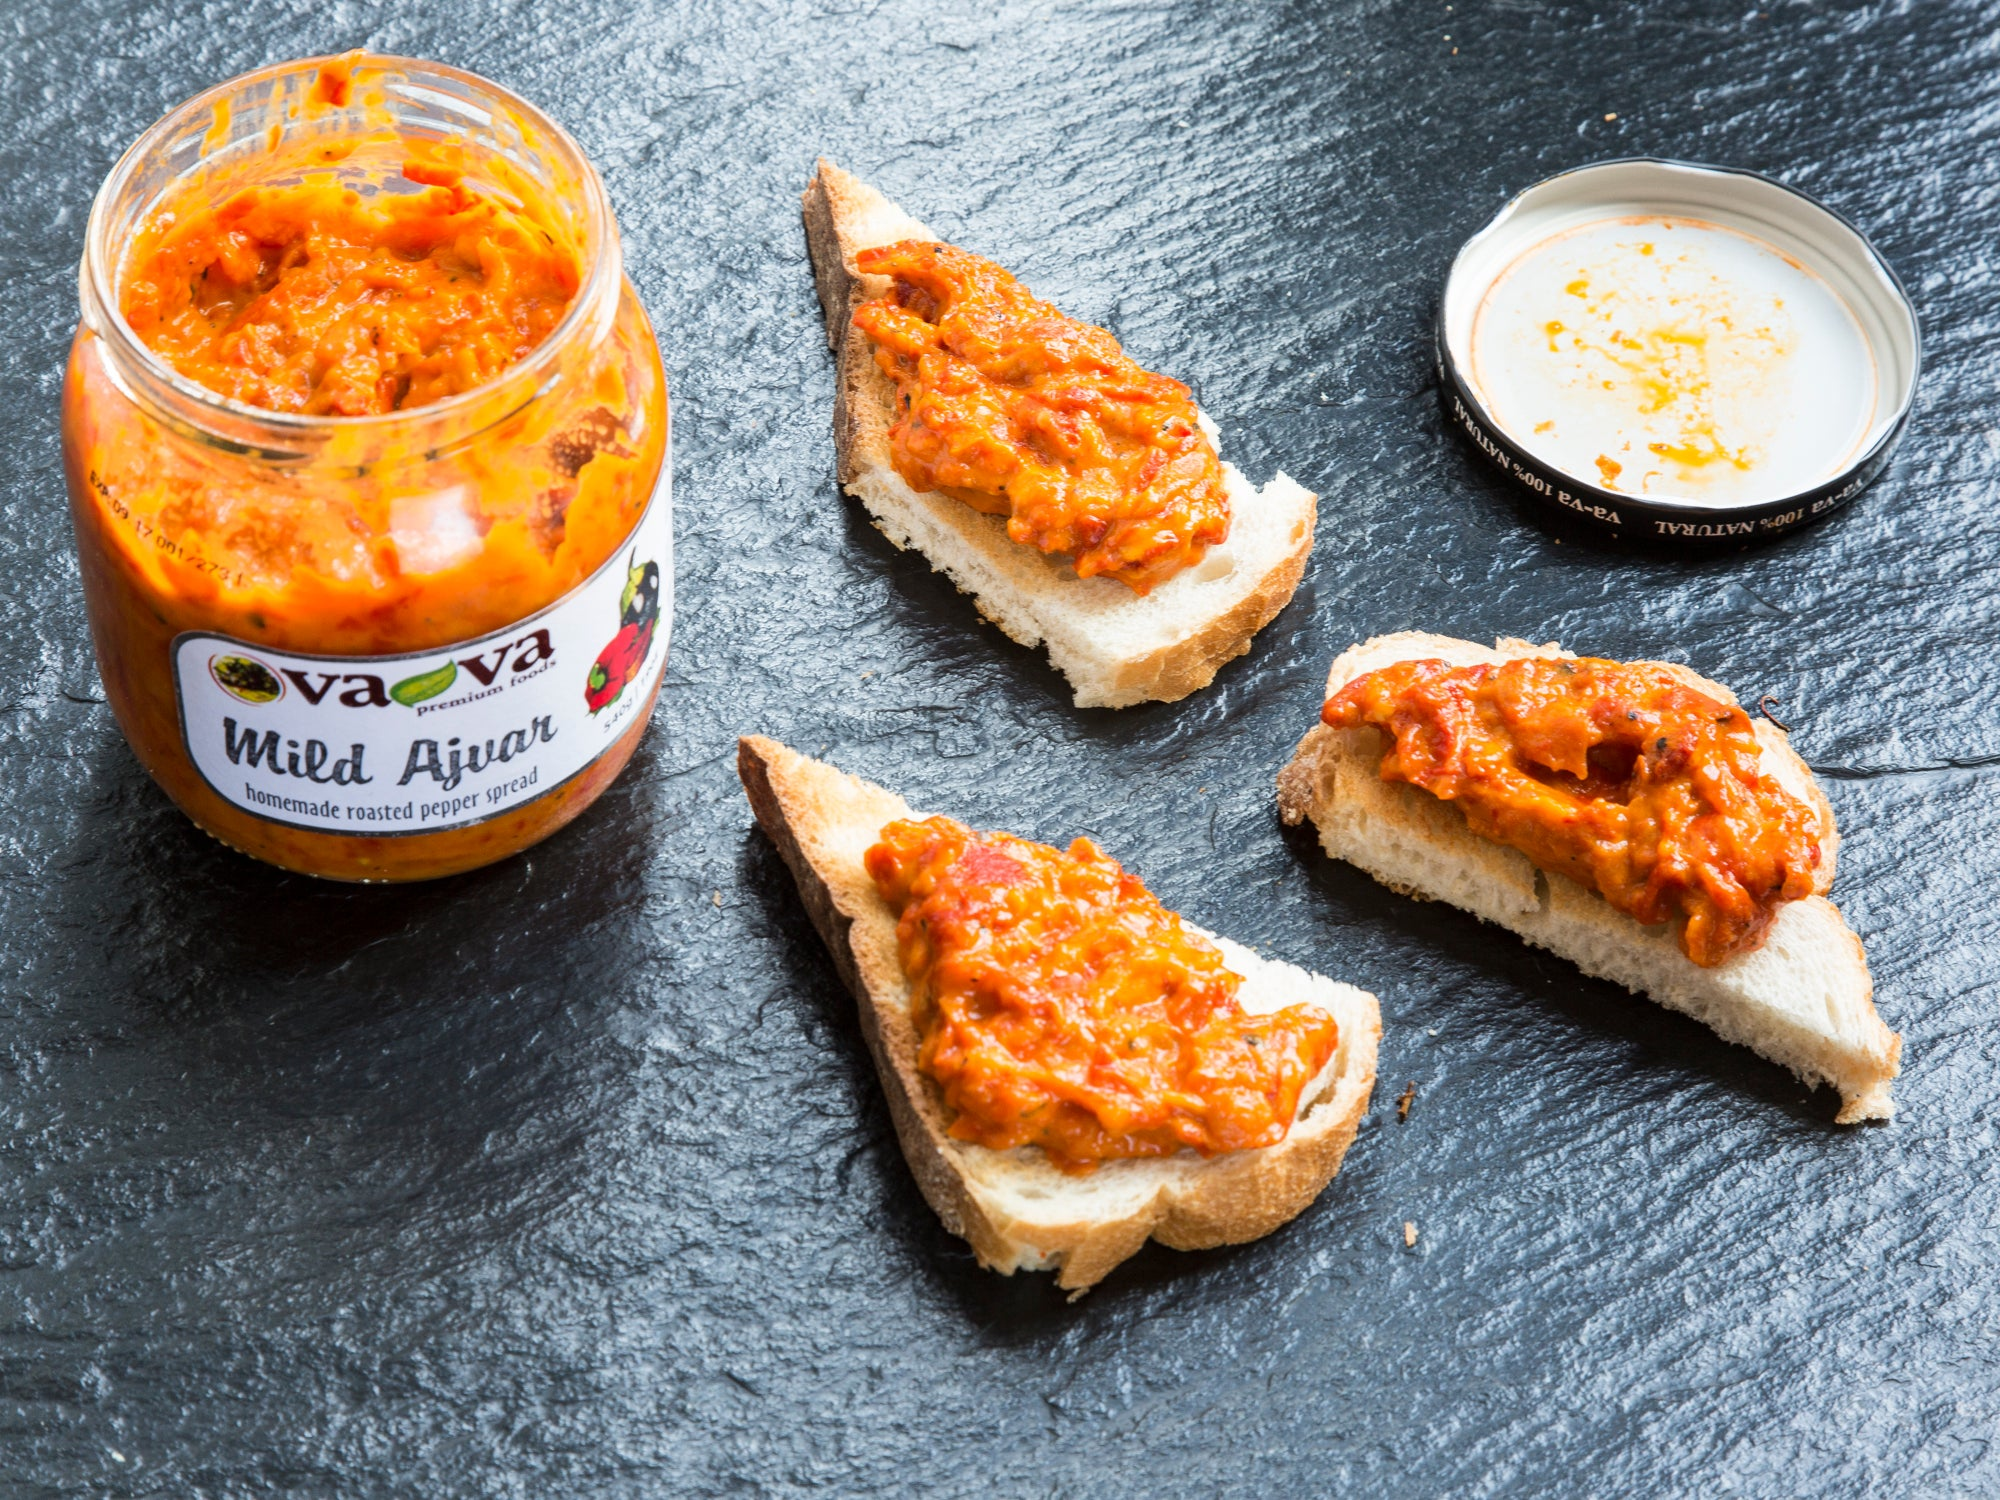 Obsessions: A Smoky Serbian Relish, by Way of New Zealand